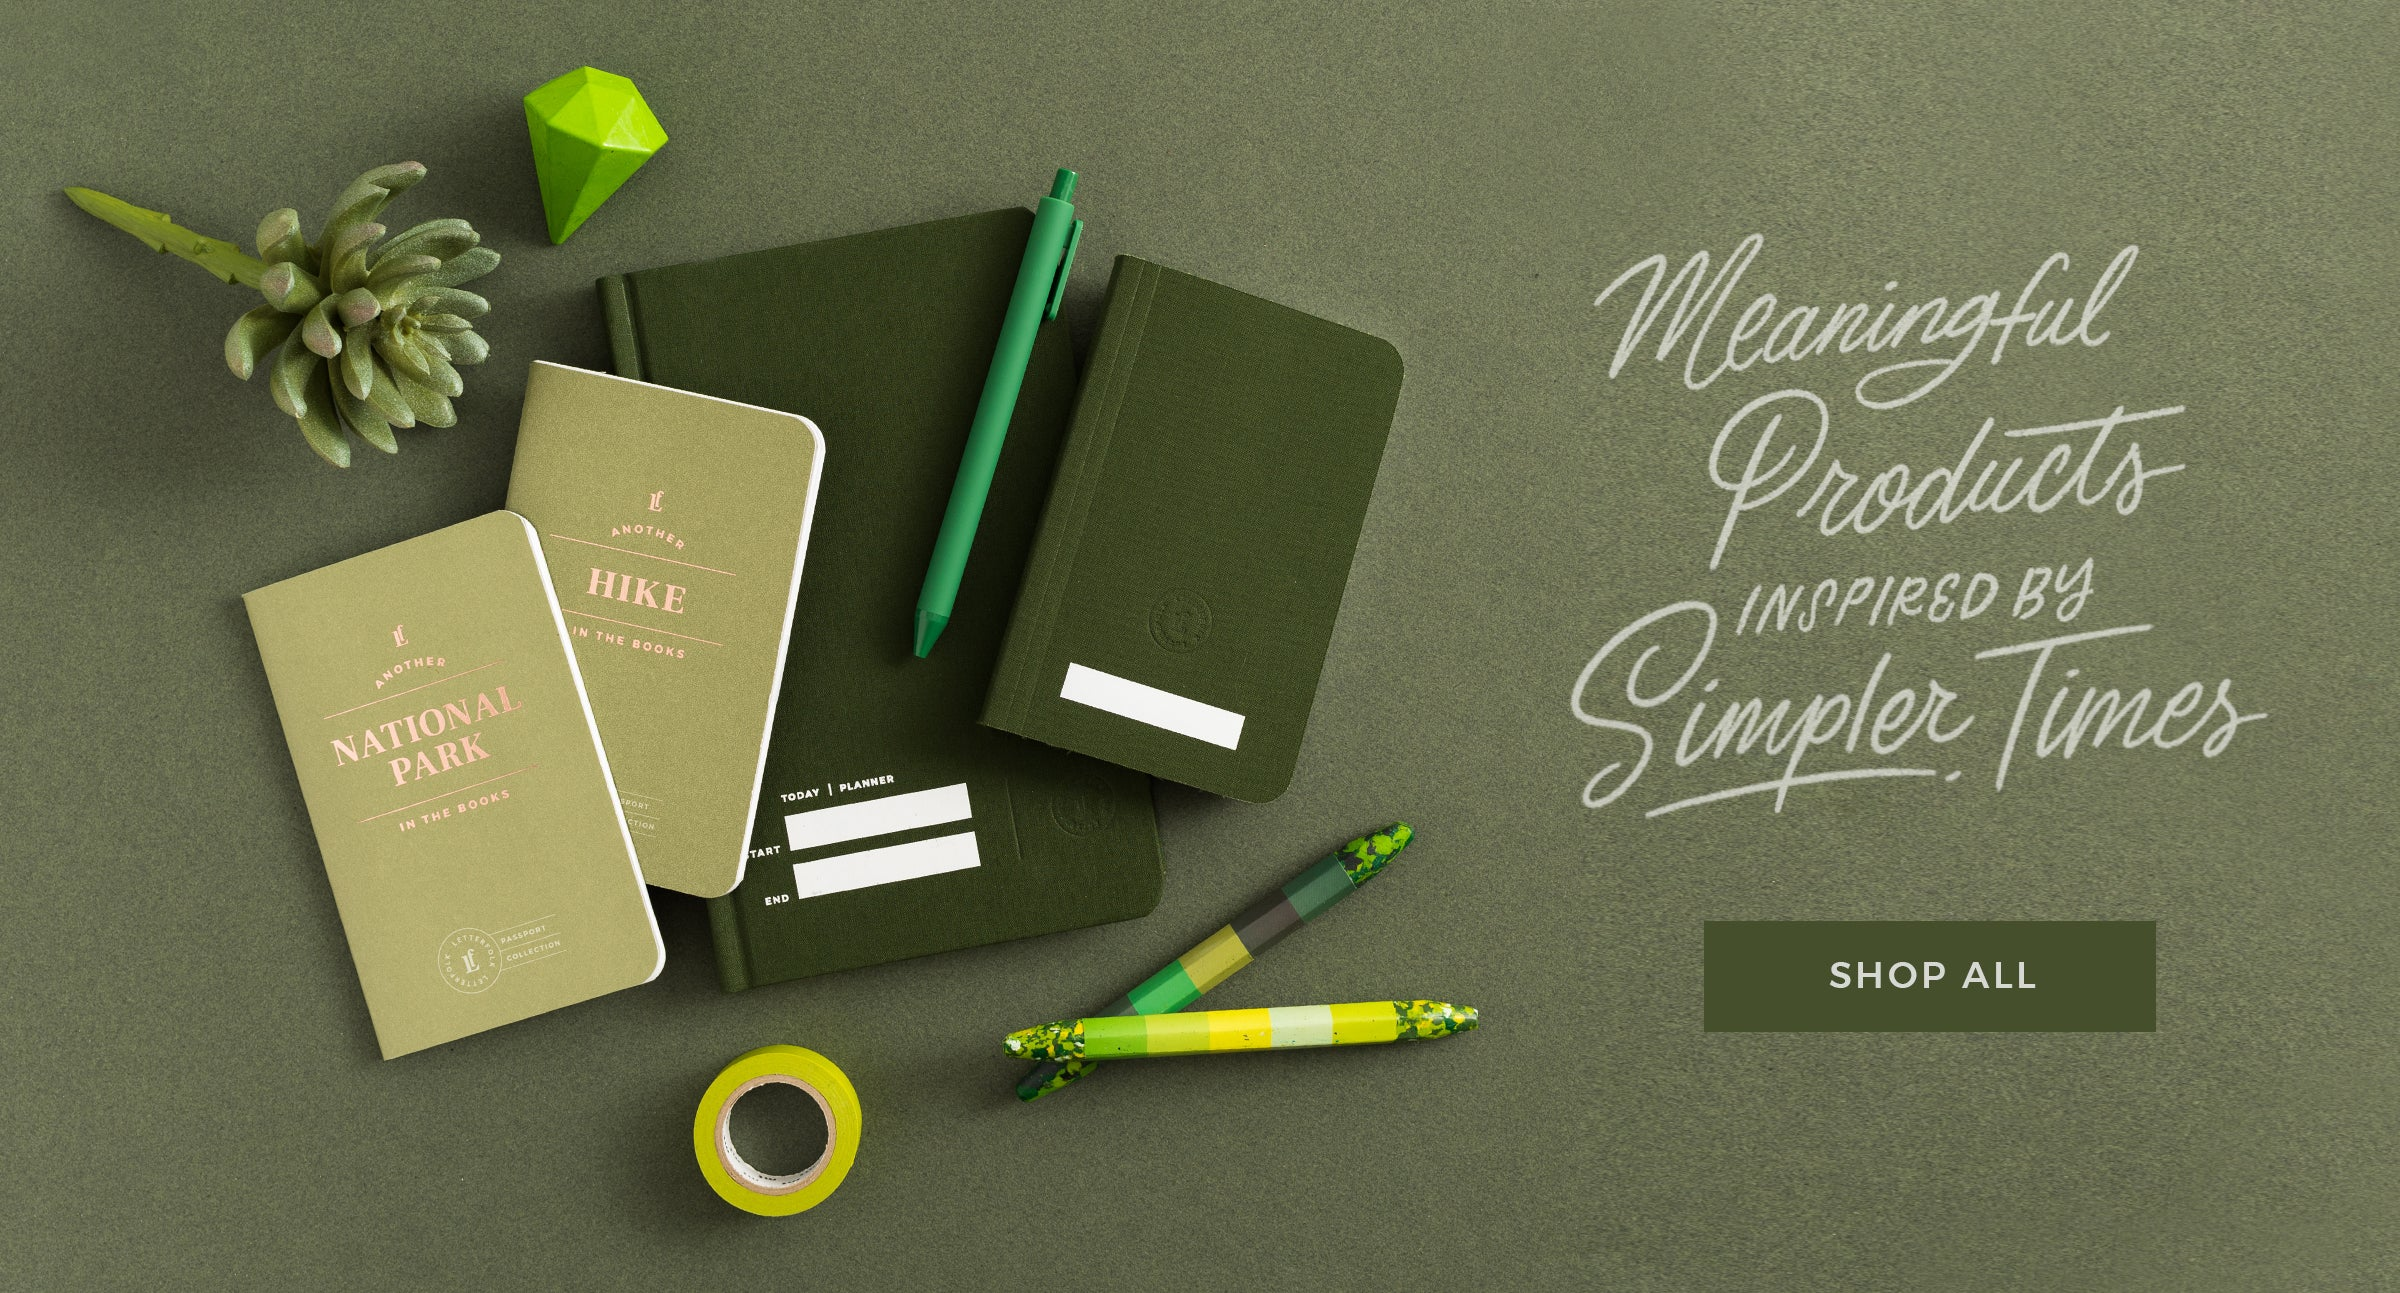 Meaningful Products by Letterfolk